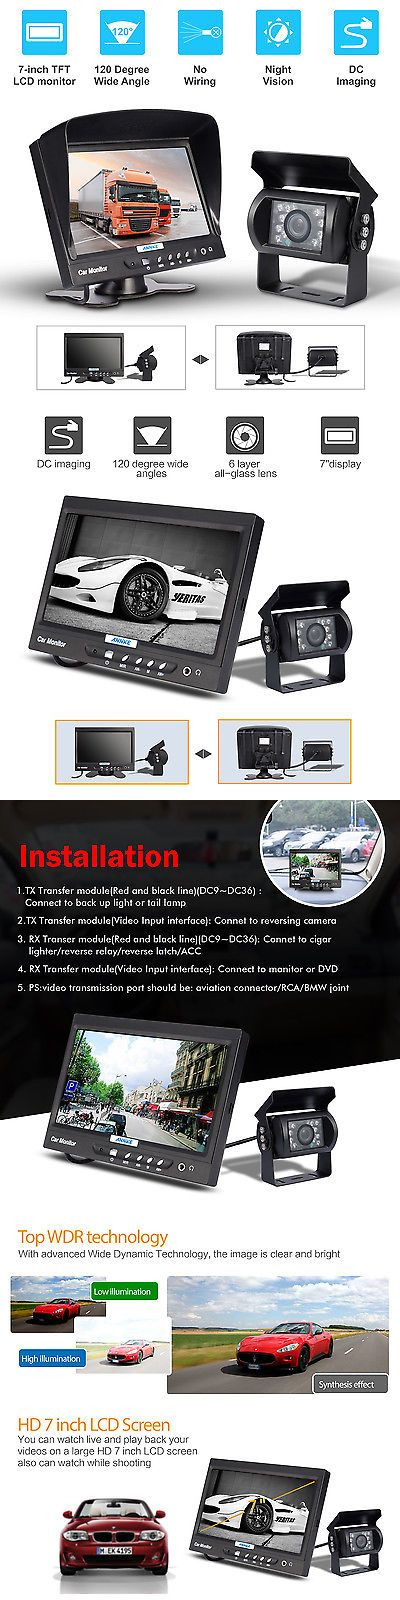 Rear View Monitors Cams and Kits: Annke 7 Lcd Rear View Monitor Car Truck With Backup Hd Camera System Security BUY IT NOW ONLY: $59.99